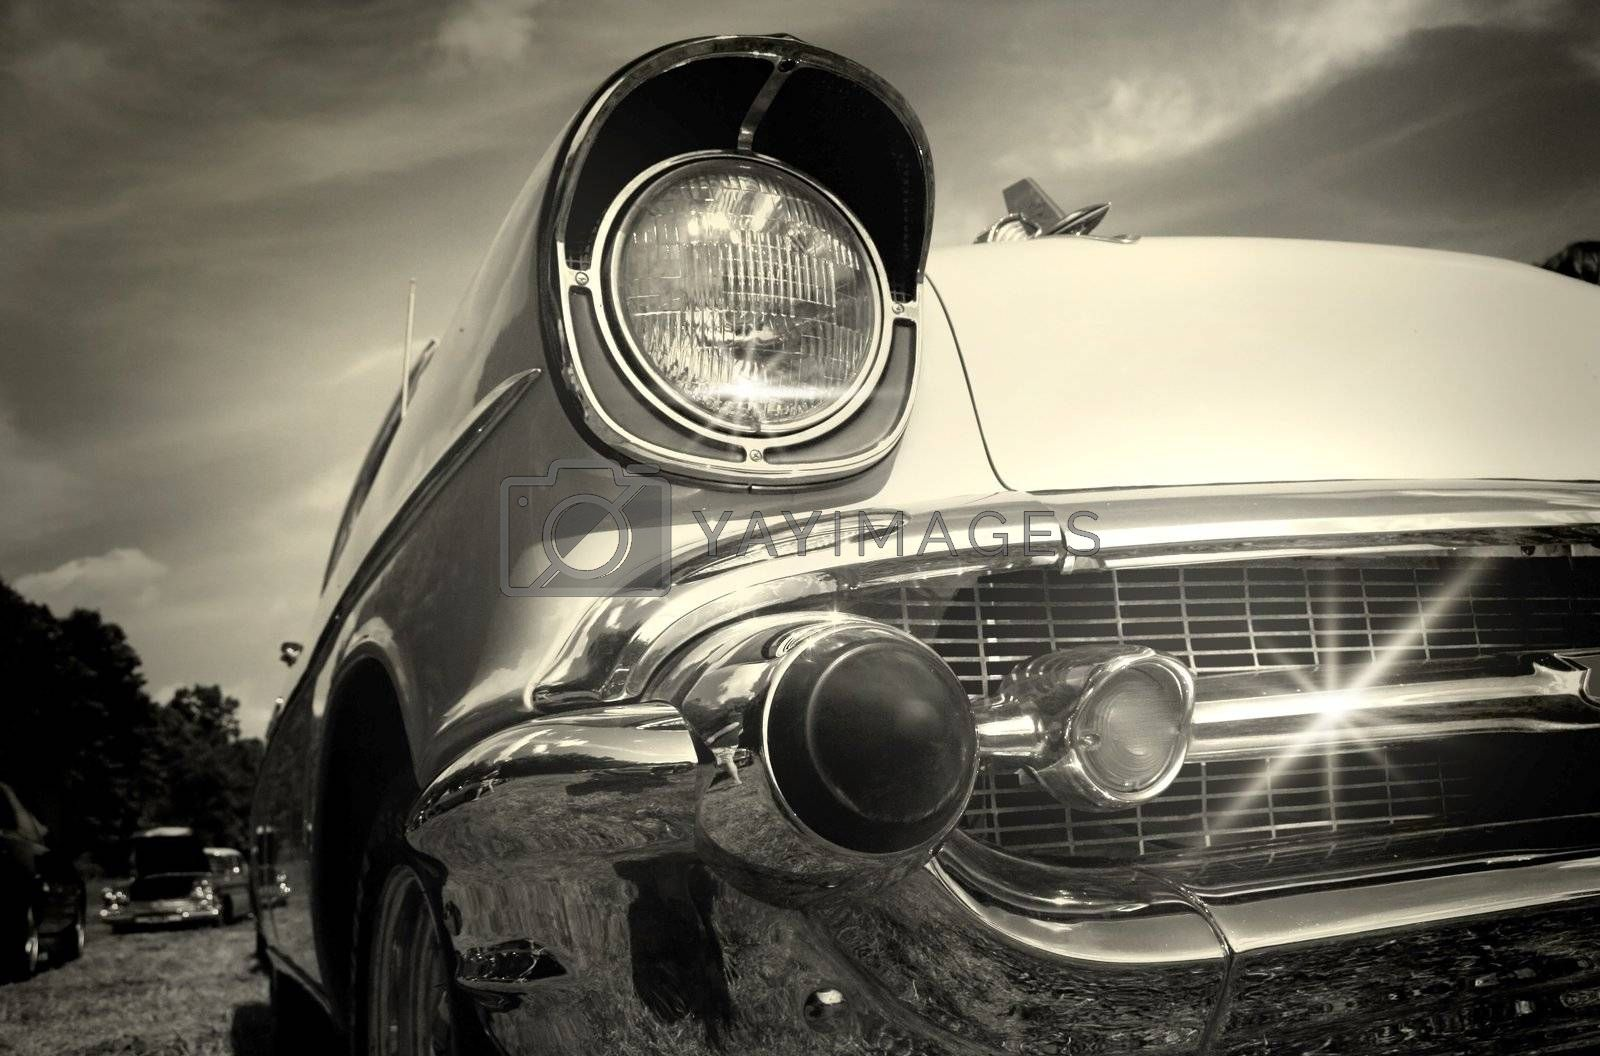 Well maintained sparkling Vintage car in black and white